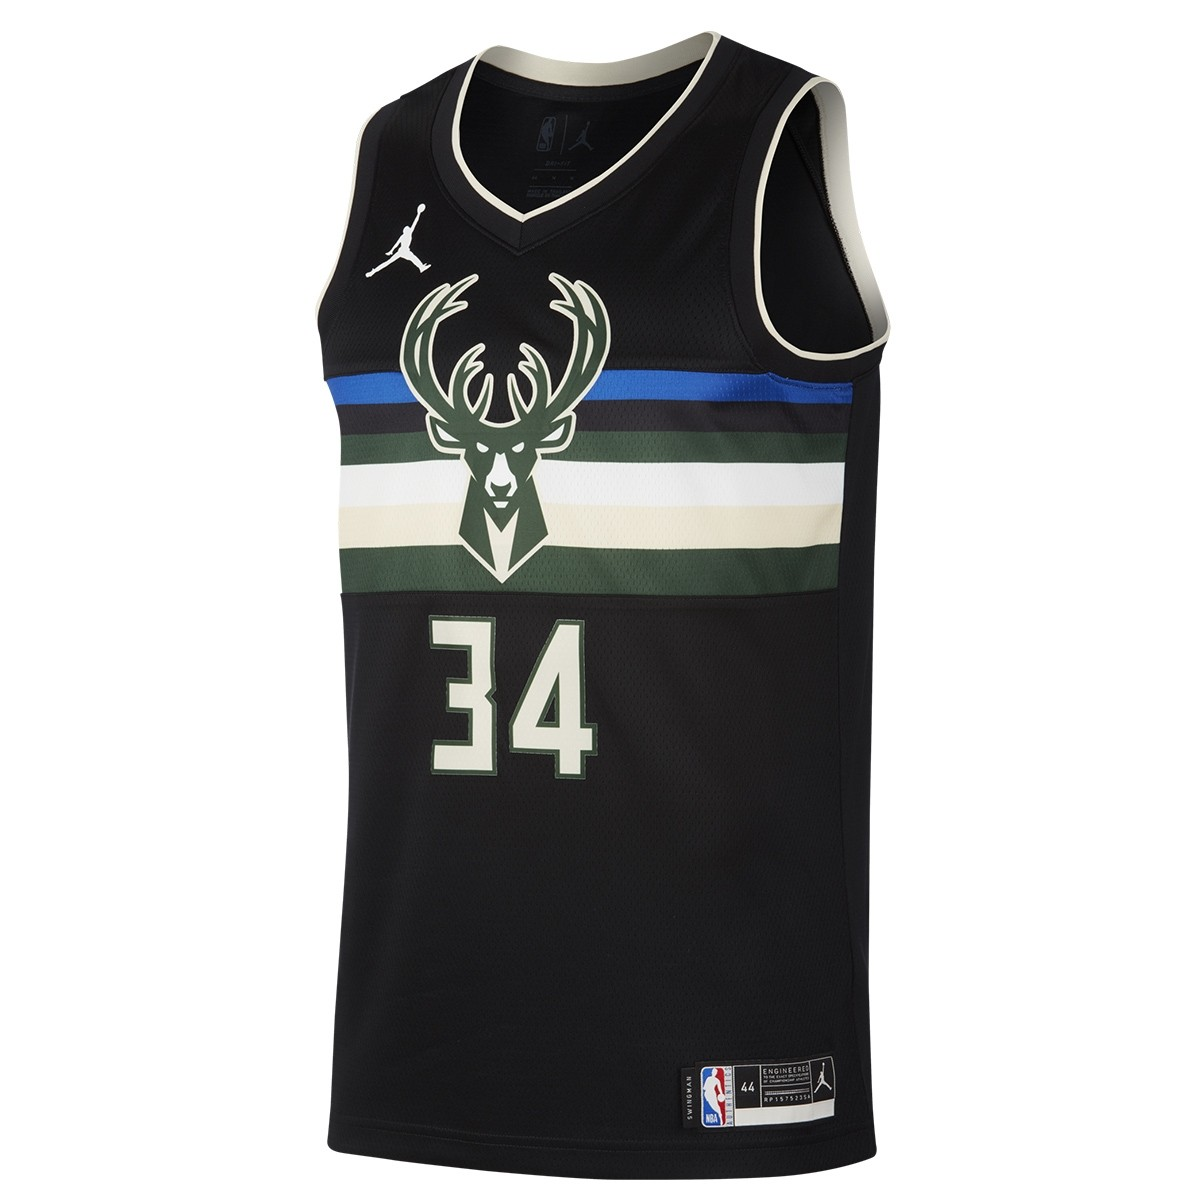 Jordan NBA Milwaukee Bucks Swingman Jersey Antetokounmpo 'Statement Edition'